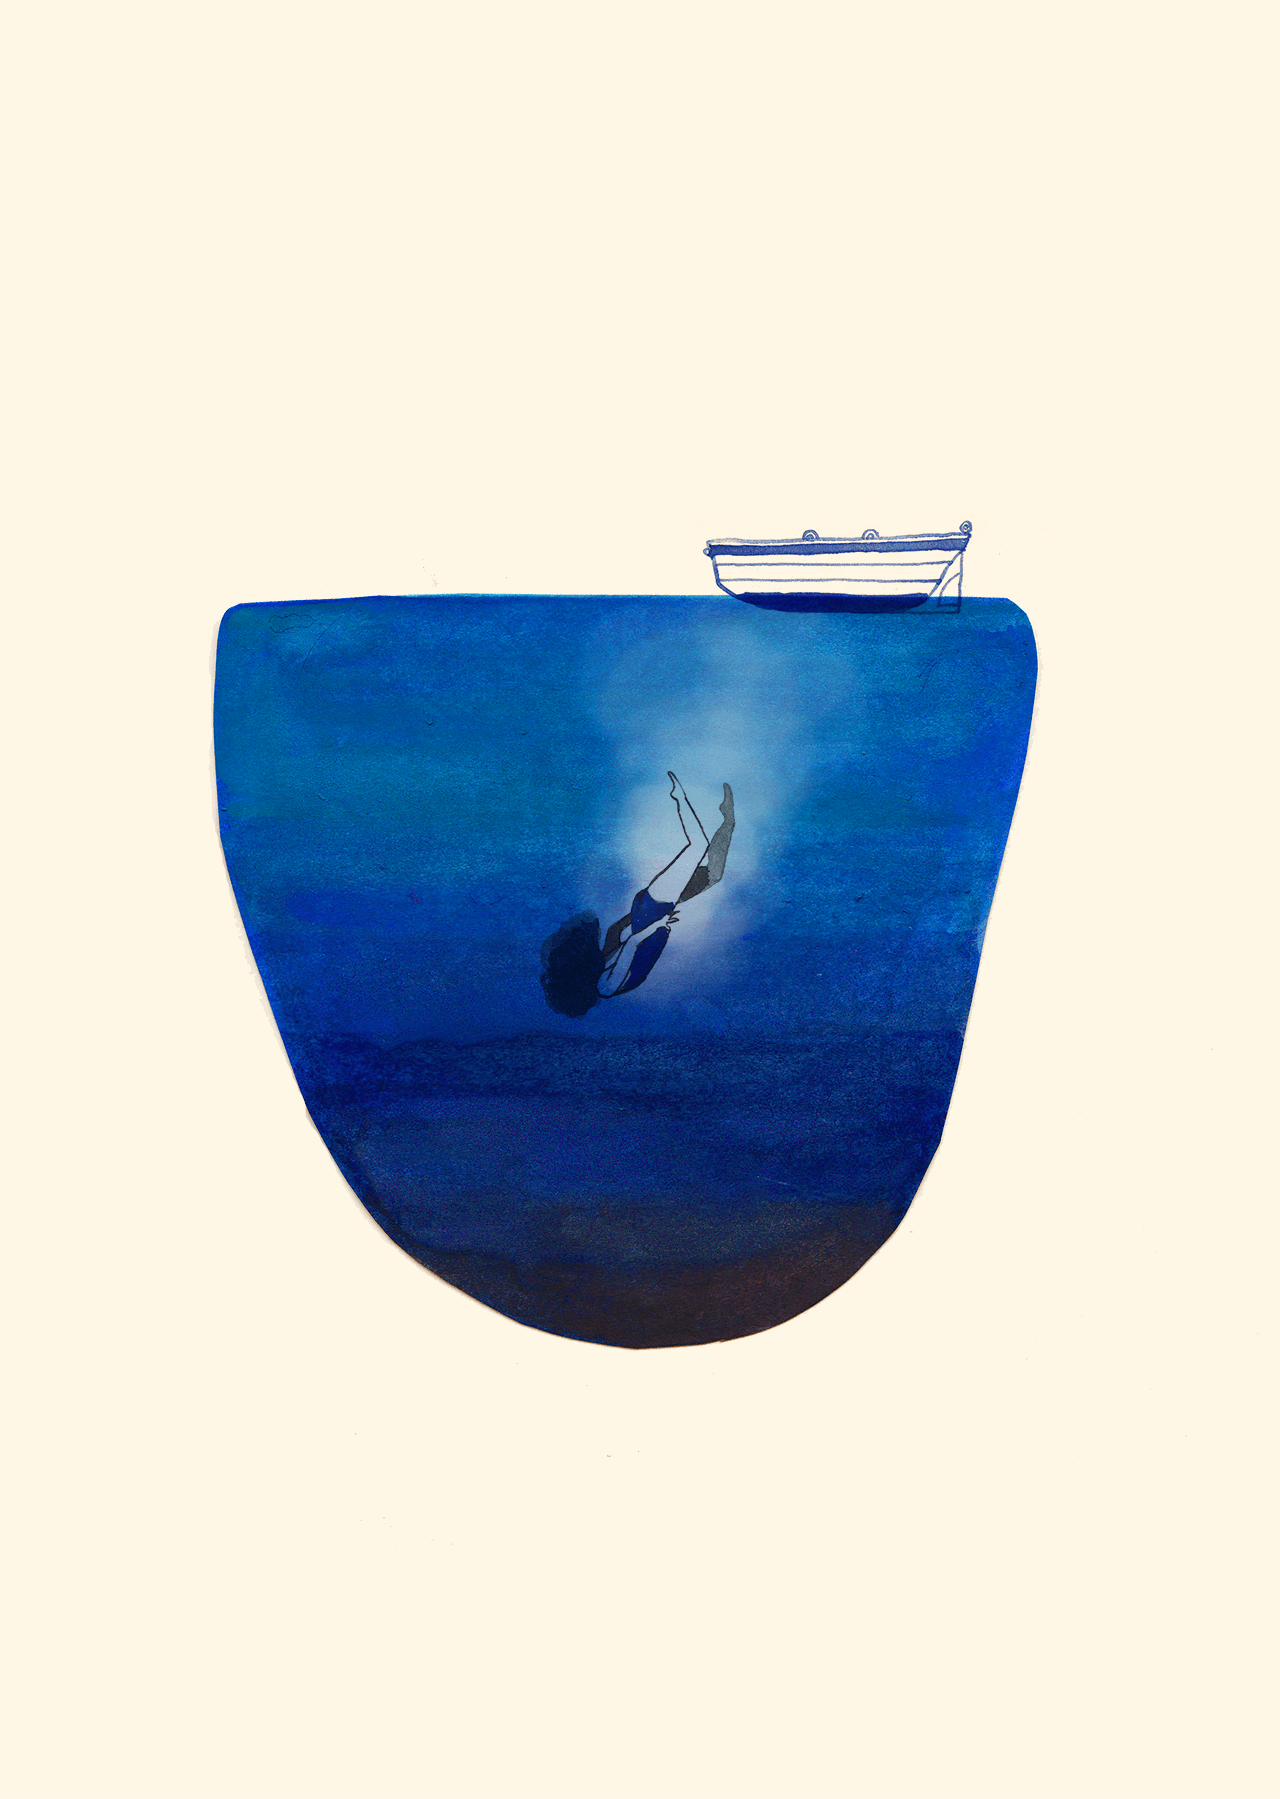 Editorial illustration of a woman diving